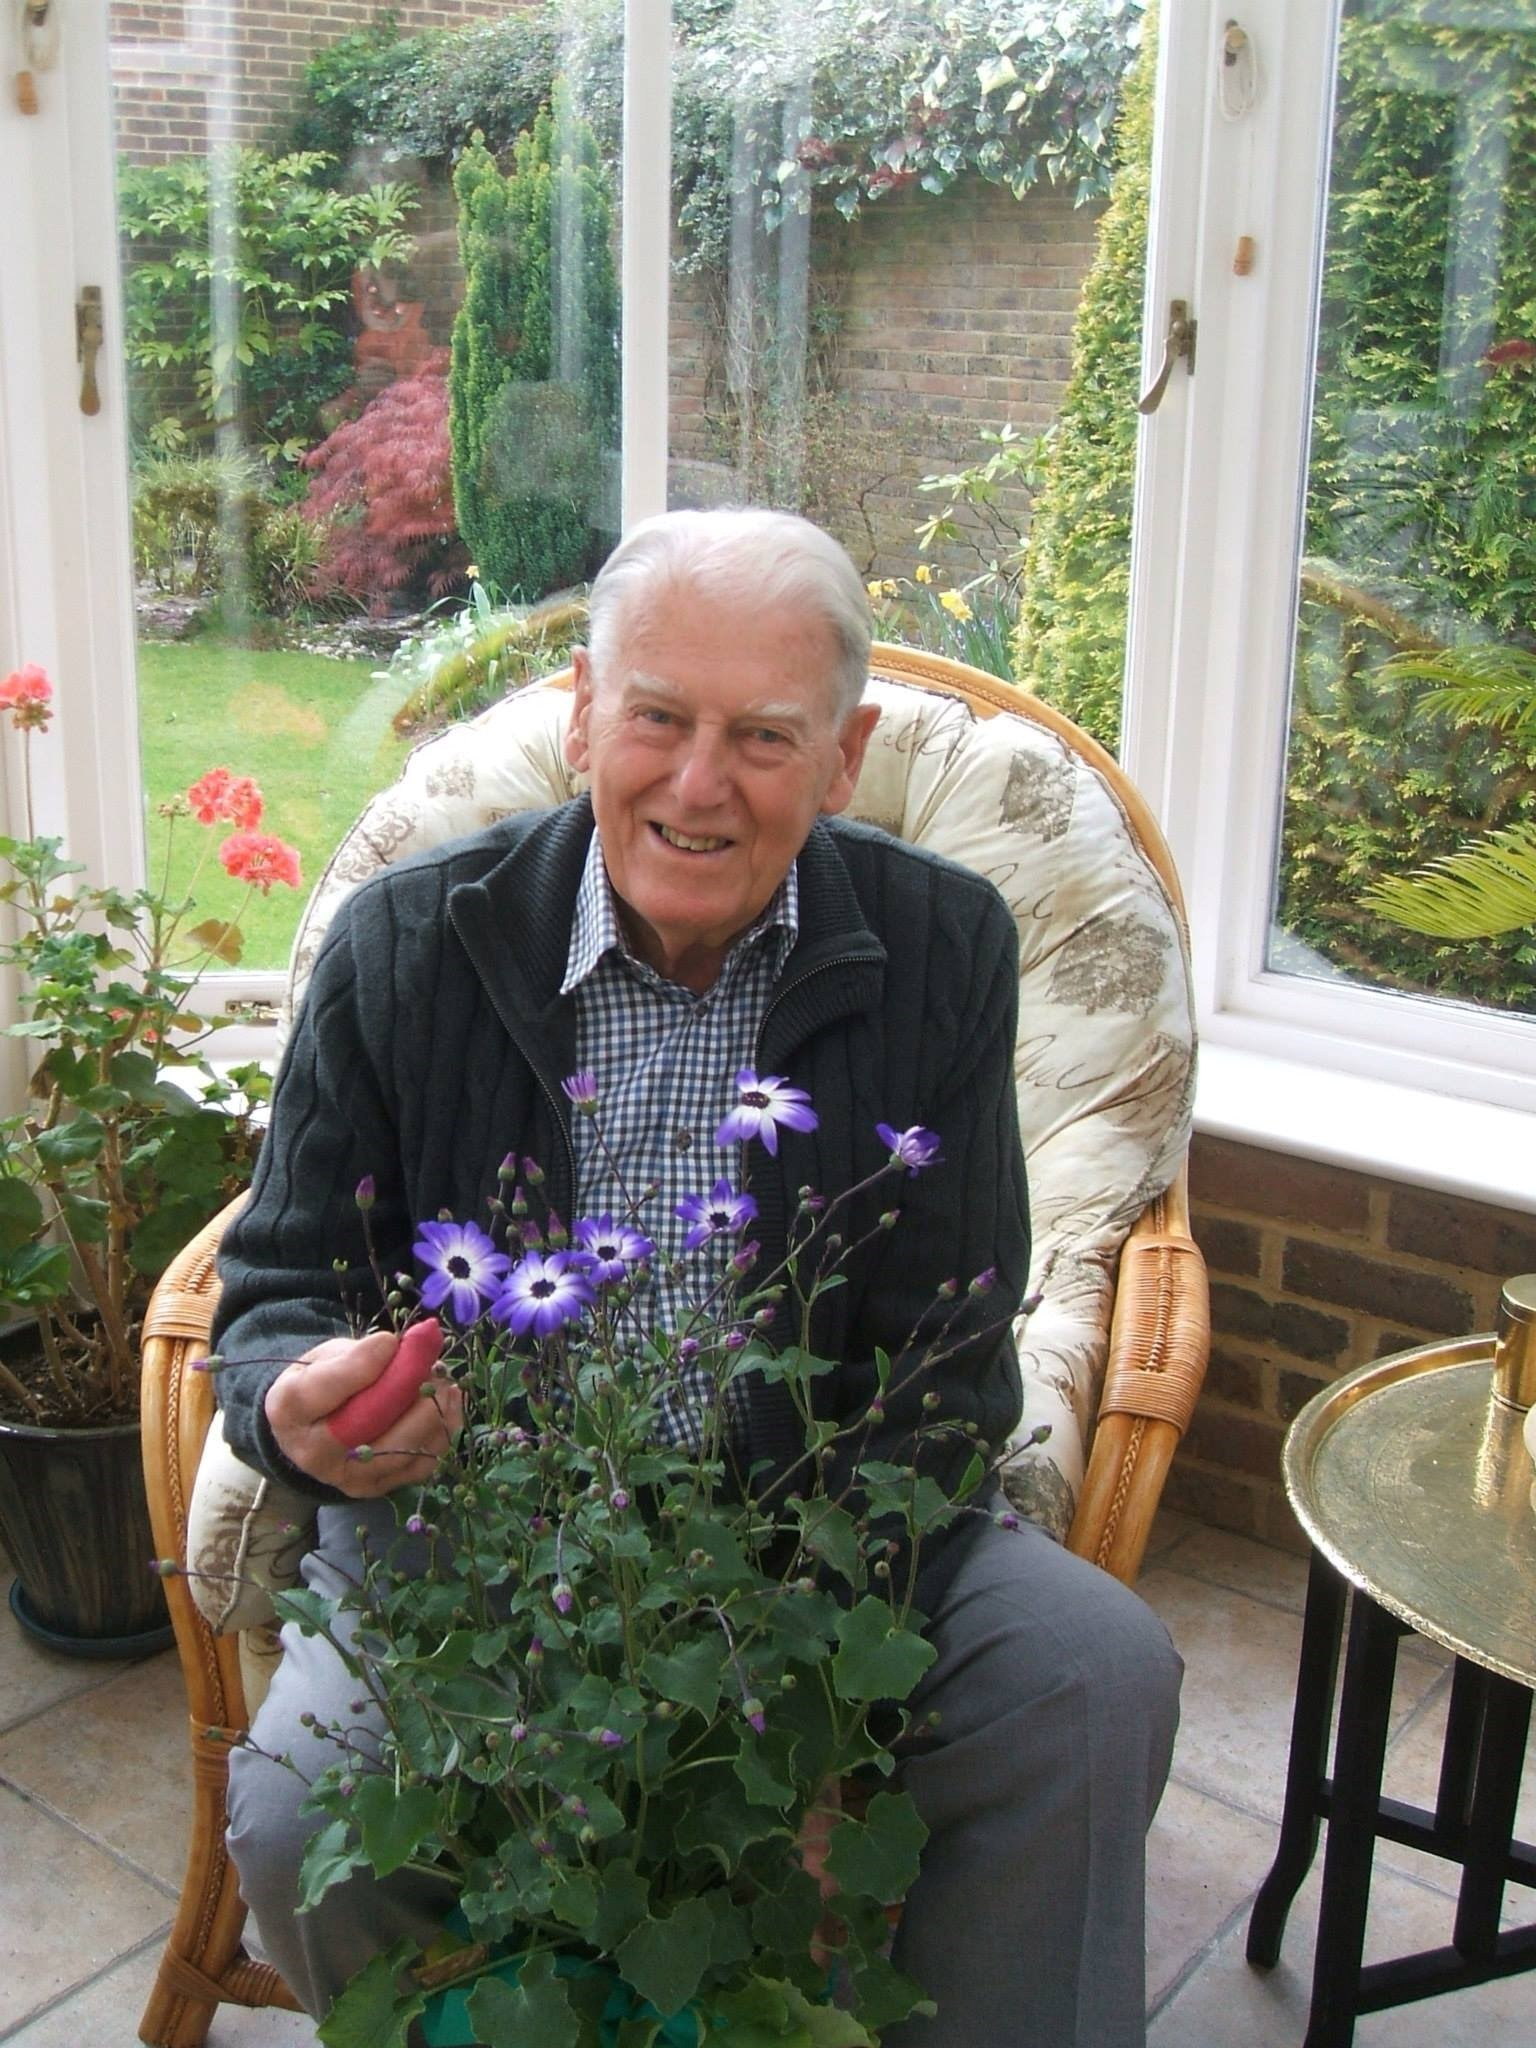 He loved (not lived!) his garden too!